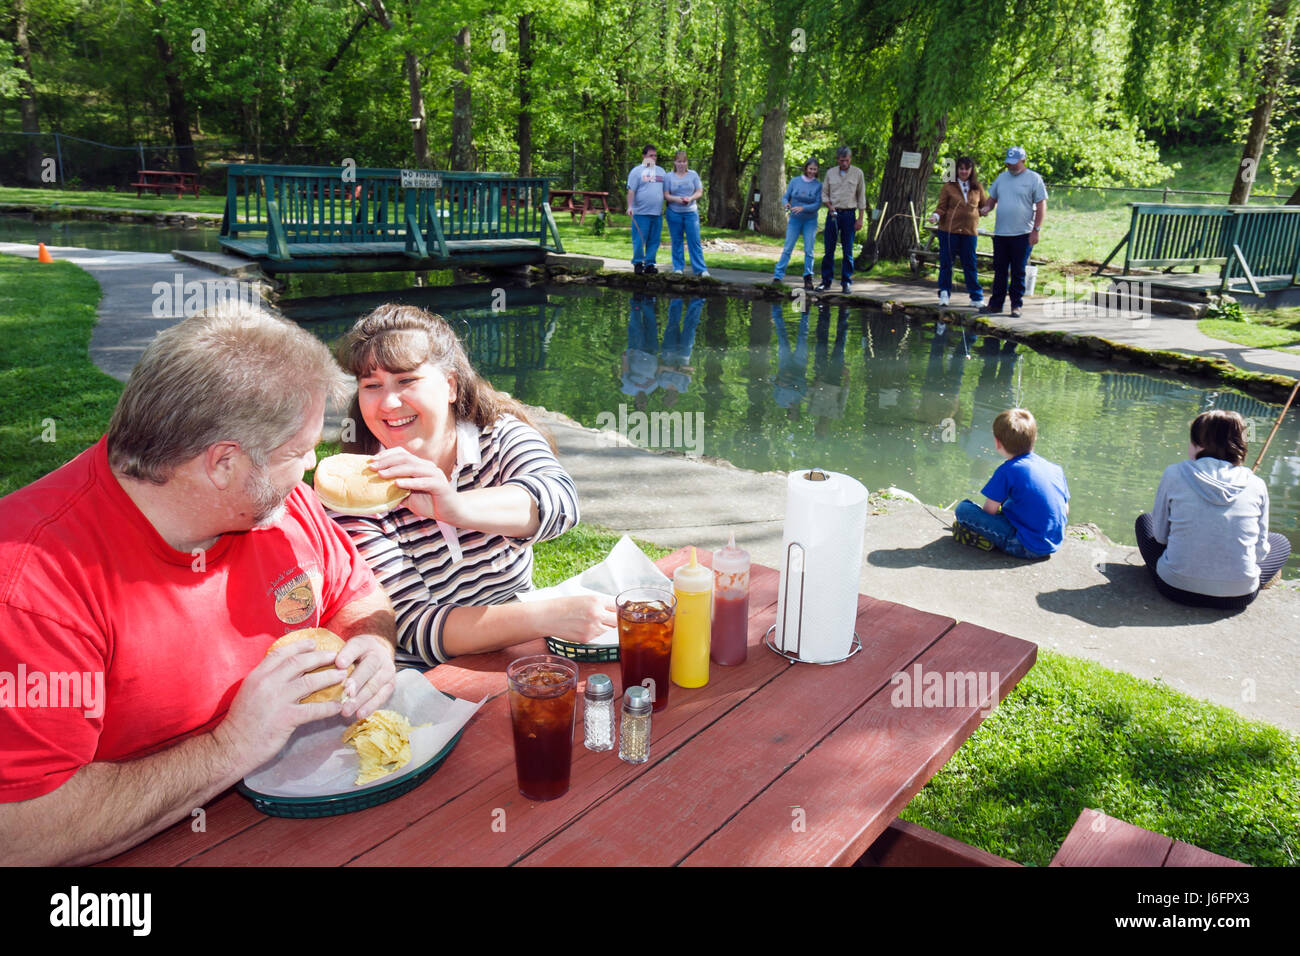 Tennessee Sevierville English Mountain Trout Farm and Grill catch eat rainbow trout man woman couple picnic table - Stock Image